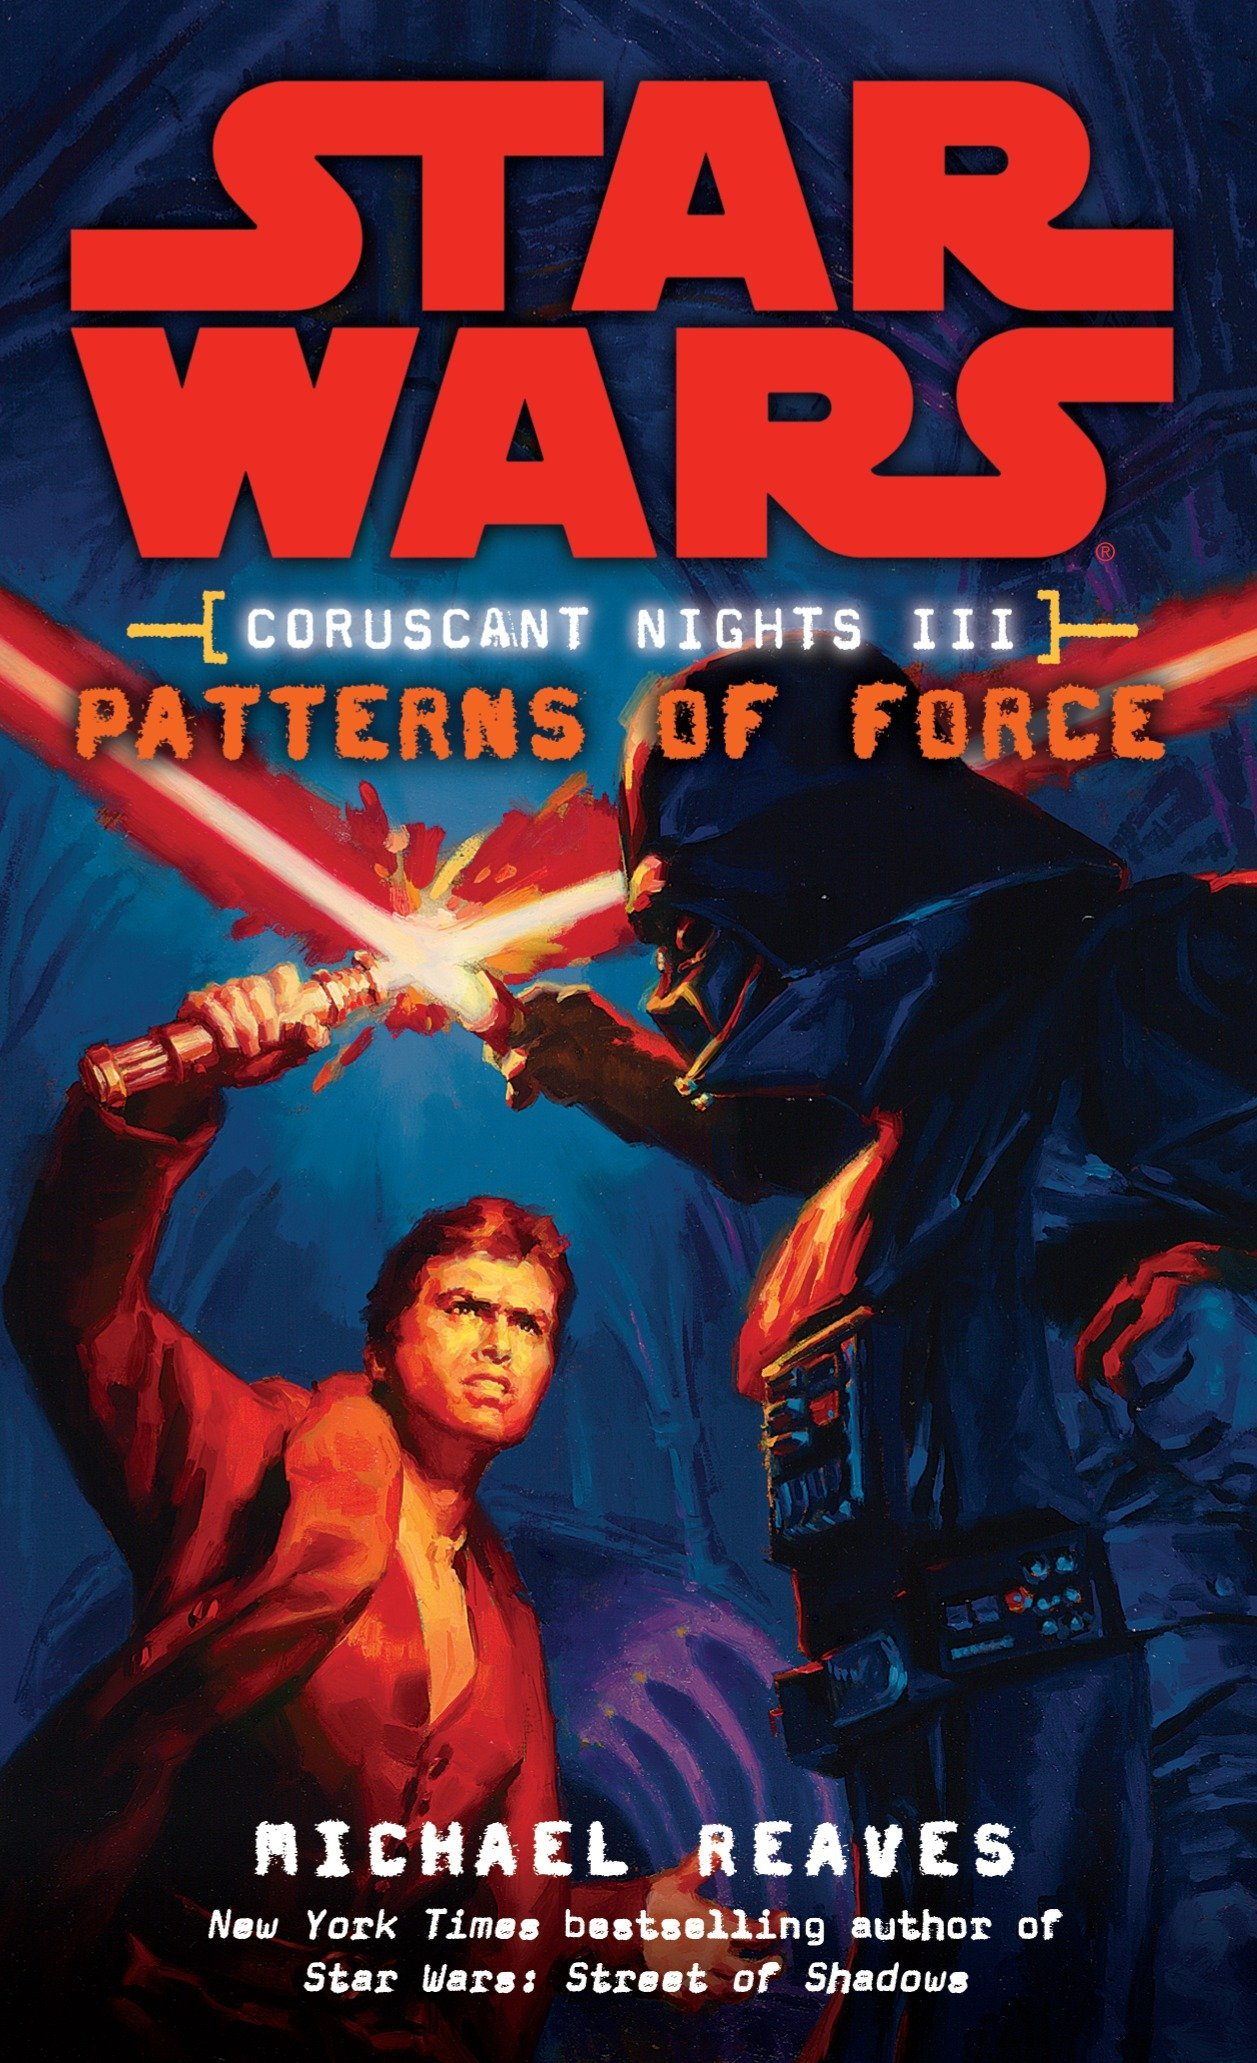 Star Wars Coruscant Nights: Patterns of Force